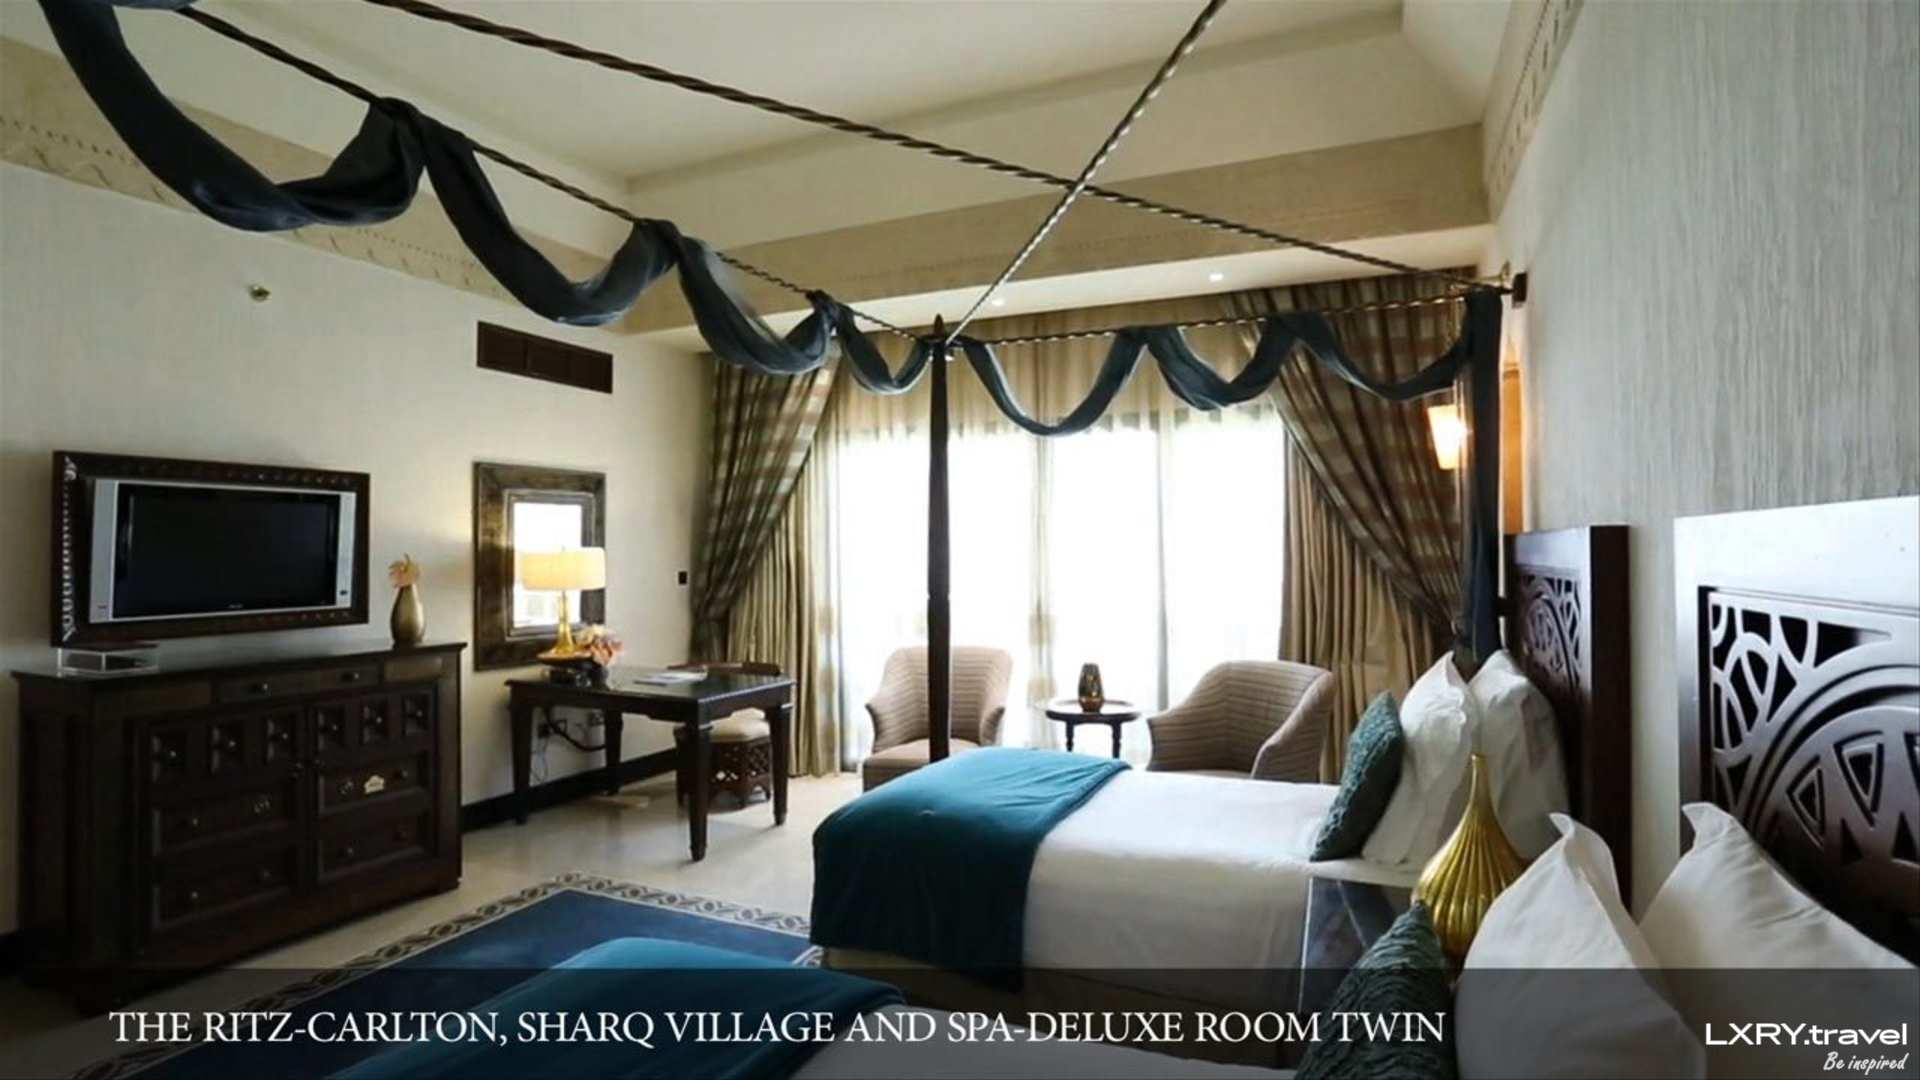 Sharq Village and Spa Hotel Operated by The Ritz-Carlton 6/69